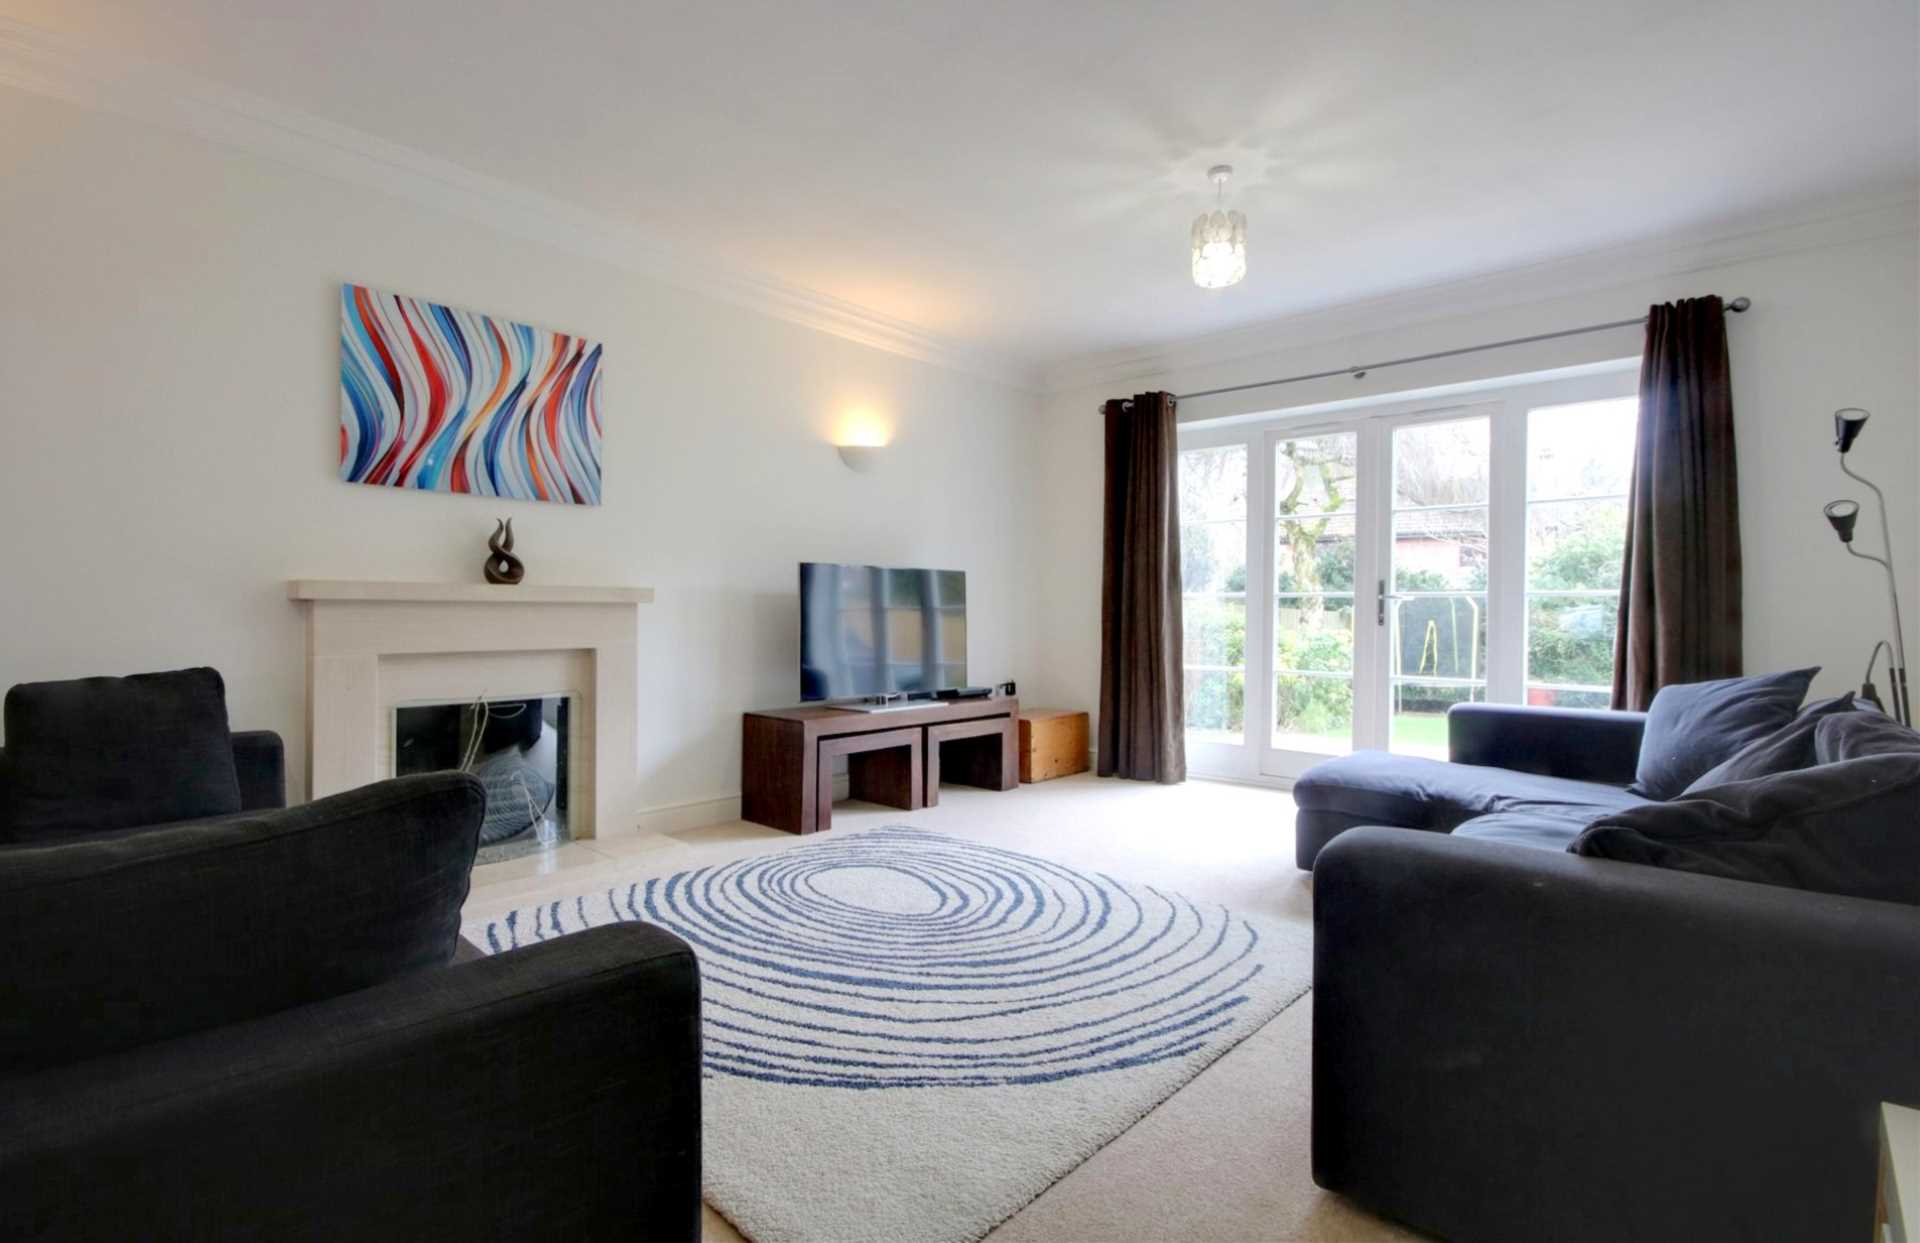 5 BED OFFERED FURNISHED & AVAILABLE June 2021, Image 3